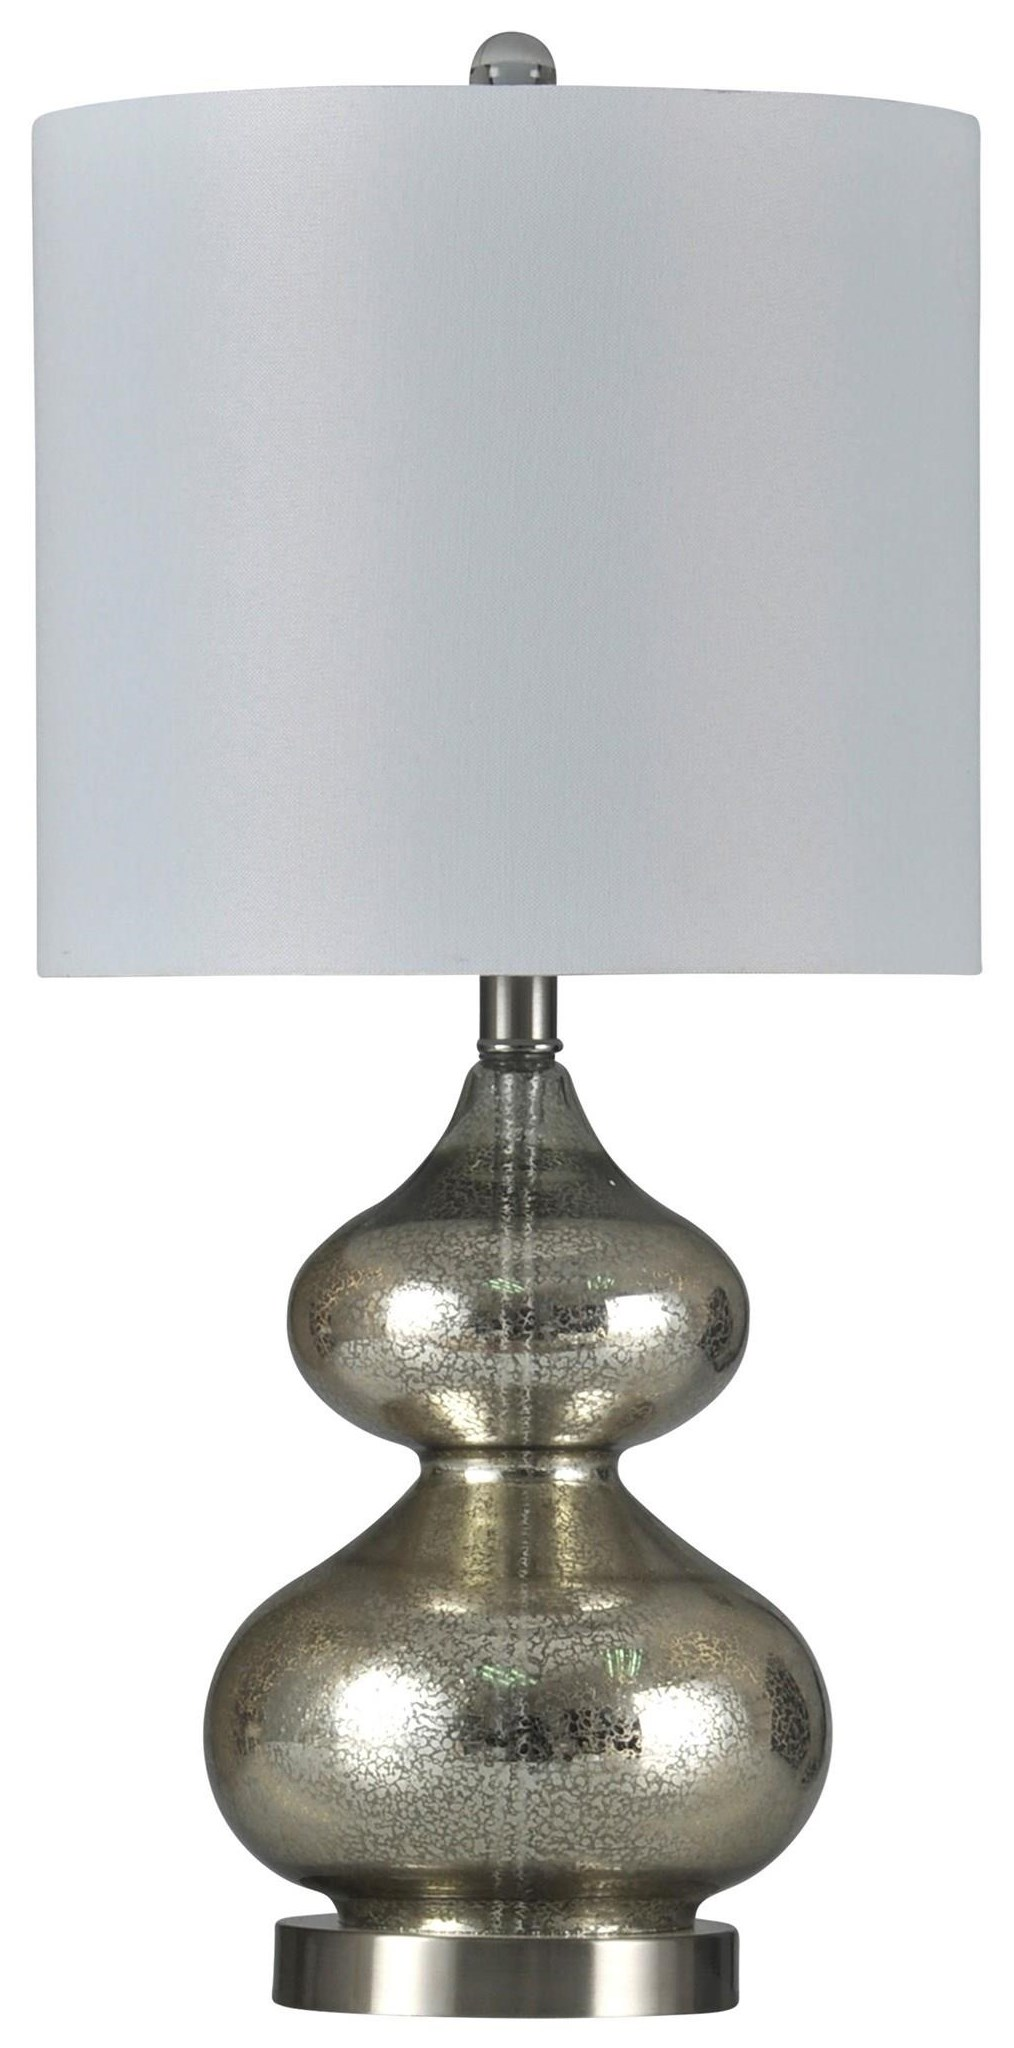 2020 LAMPS Glass Silver Lamp by StyleCraft at Furniture Fair - North Carolina